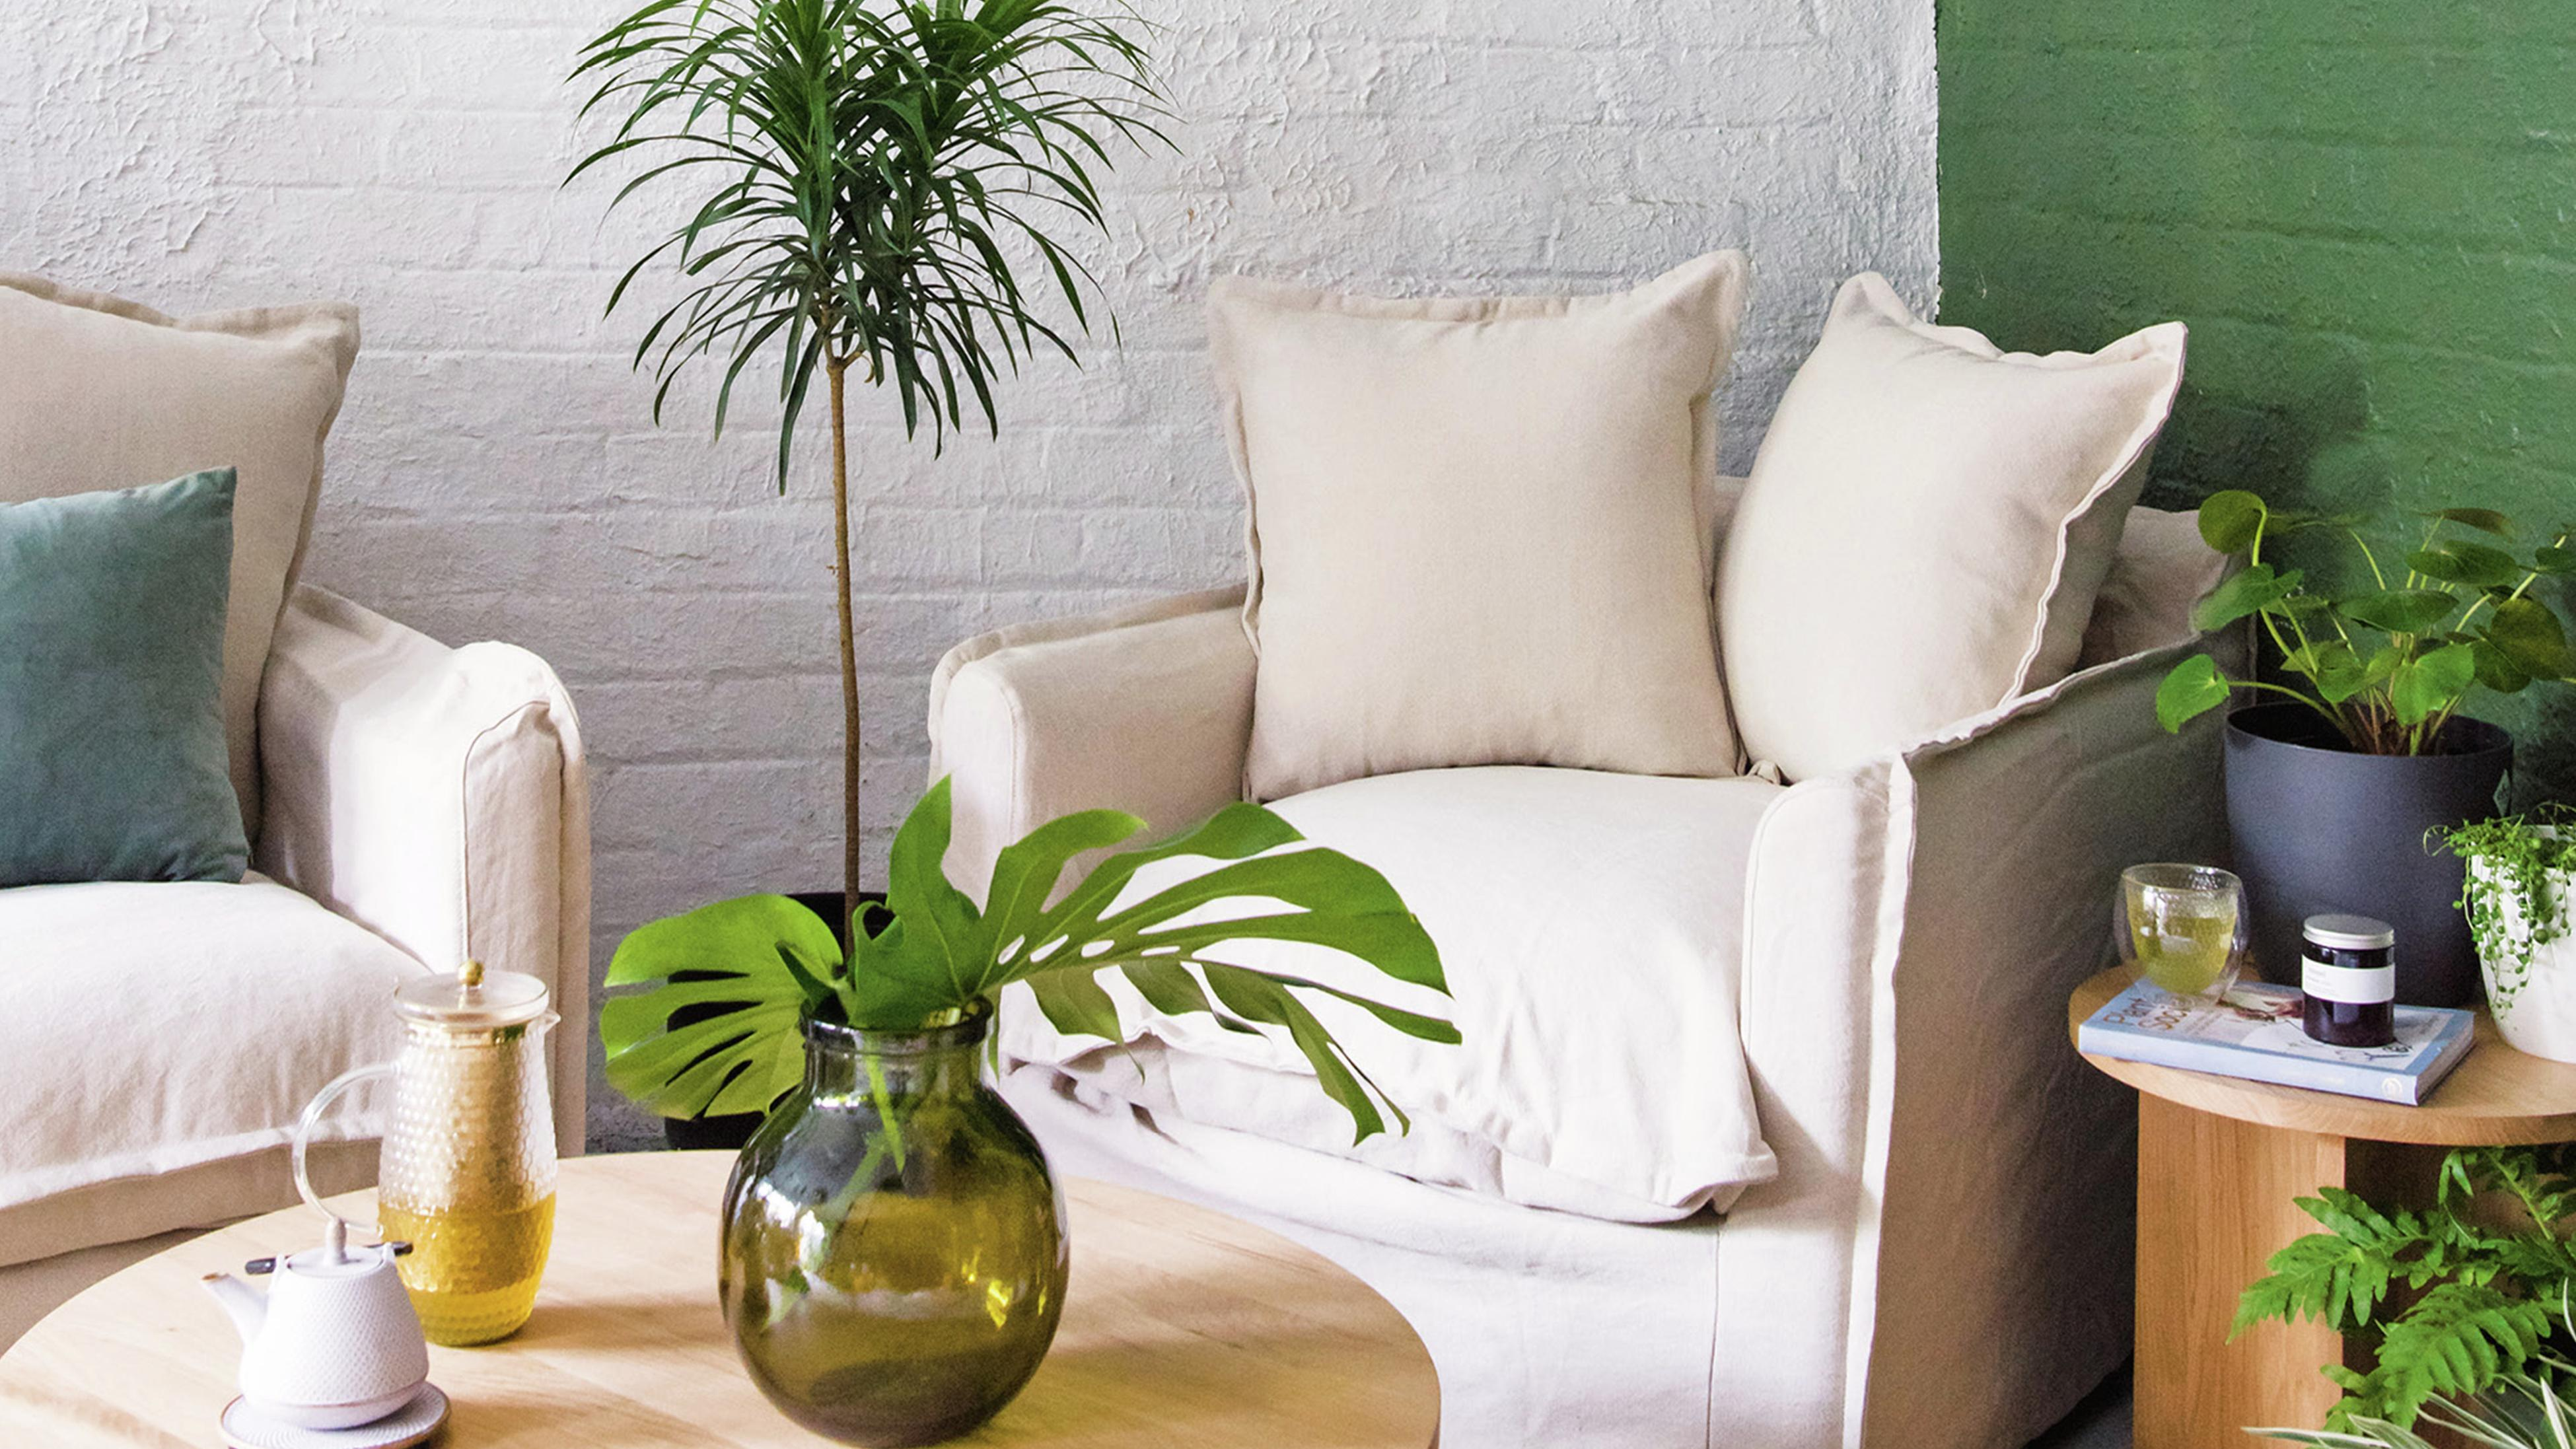 White armchairs in a living room full of indoor plants